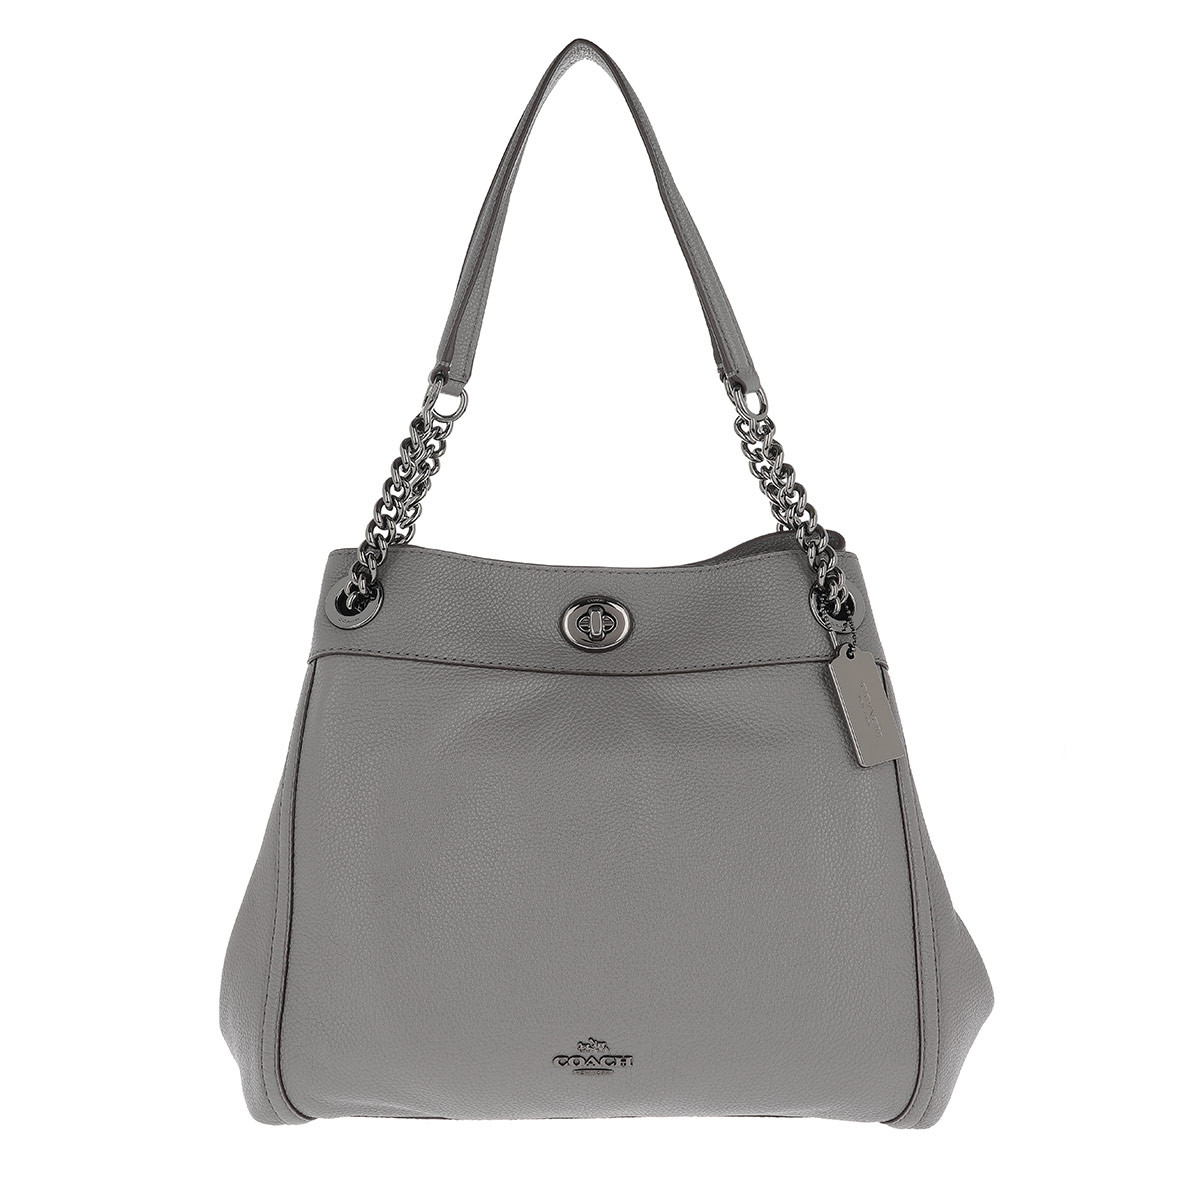 Coach Tote - Polished Pebbled Leather Turnlock Edie Shoulder Bag Heather Grey - in grau - für Damen